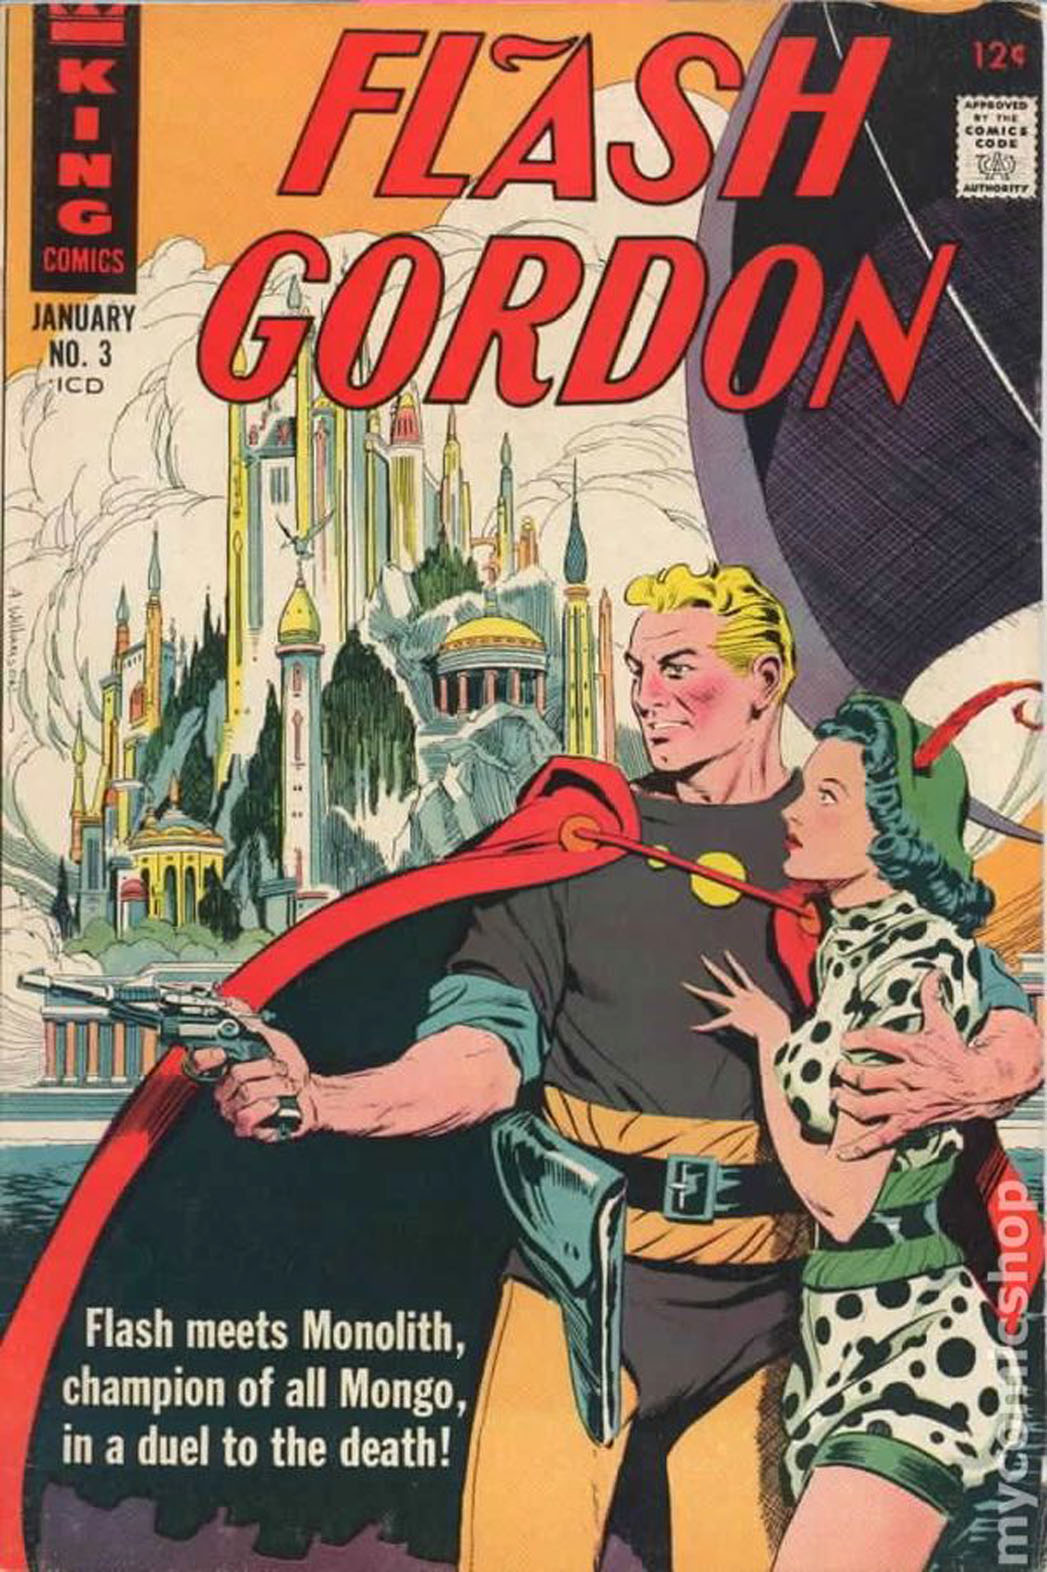 Flash Gordon Comic Cover - P 2014